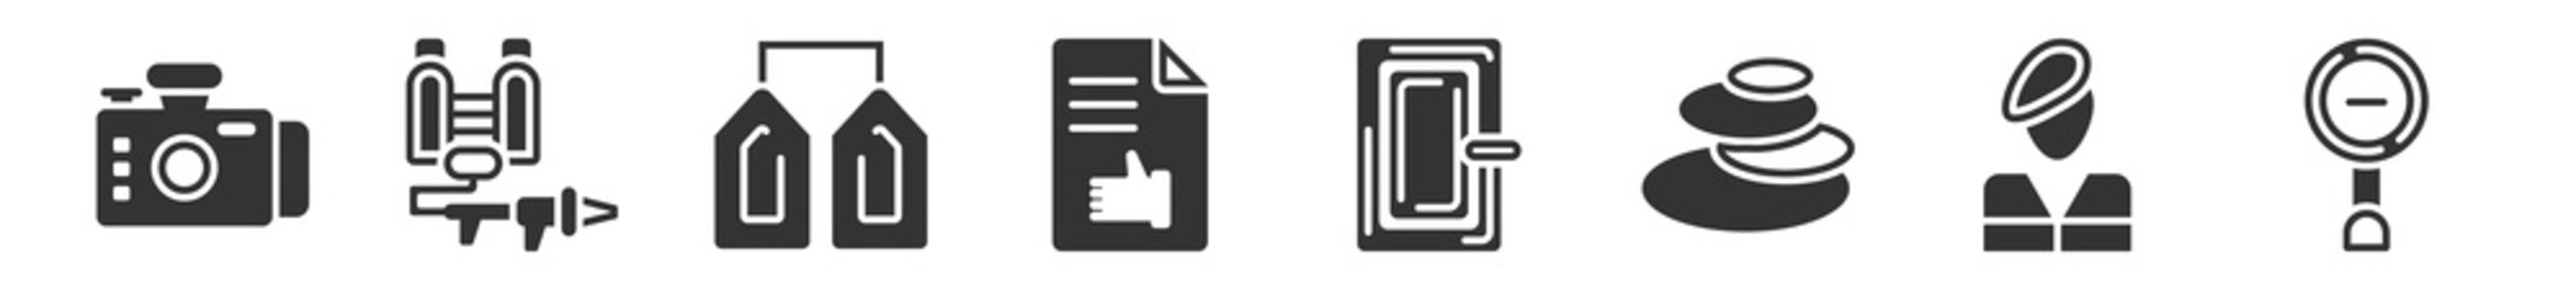 filled set of miscellaneous icons. glyph vector icons such as front camera, flame thrower, granary, enlist, room door, diminish. vector illustration.